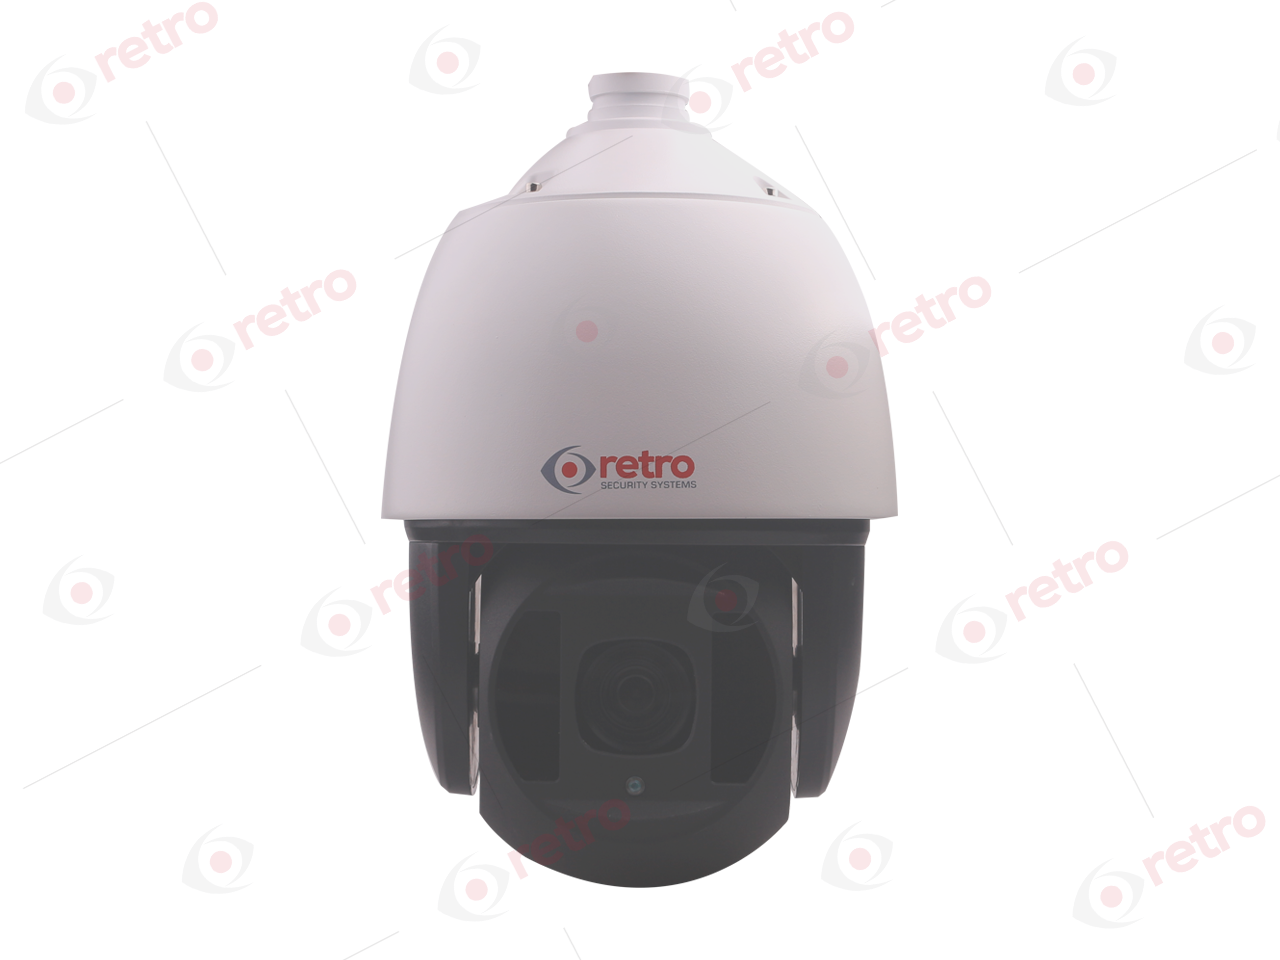 RT-5094 IP 2 MEGAPİXEL 1080P FULL HD LAZER LED SPEED DOME IP KAMERA